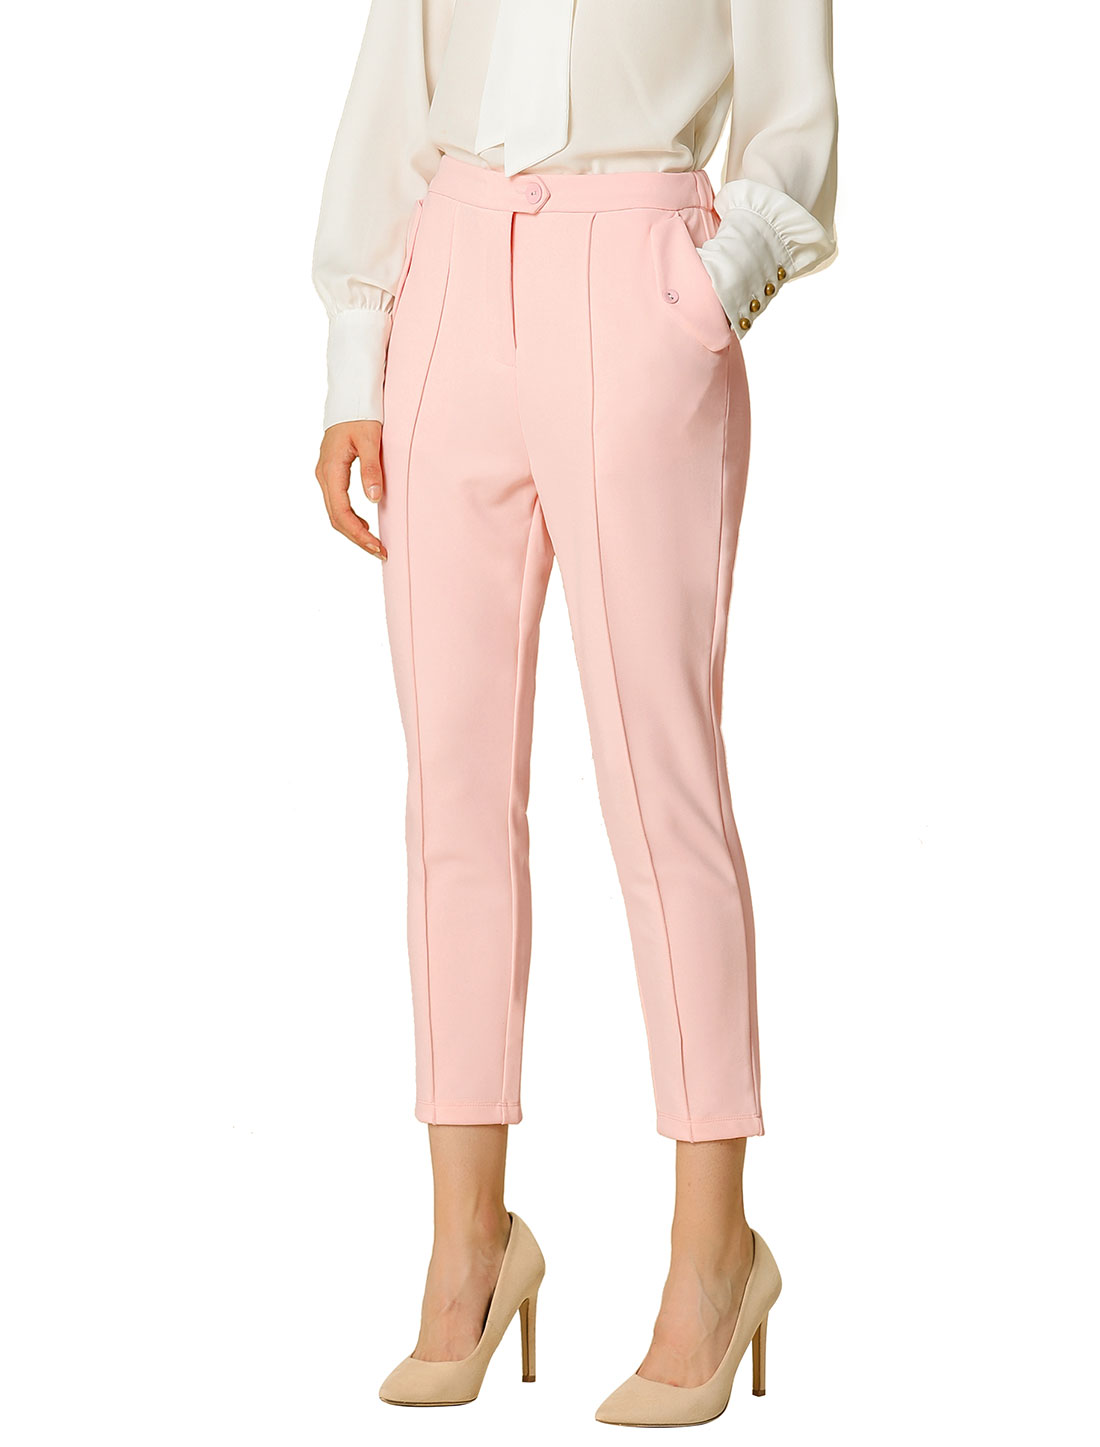 Allegra K Women's Work Pants Slim Stretchy Cropped Trousers Pink M